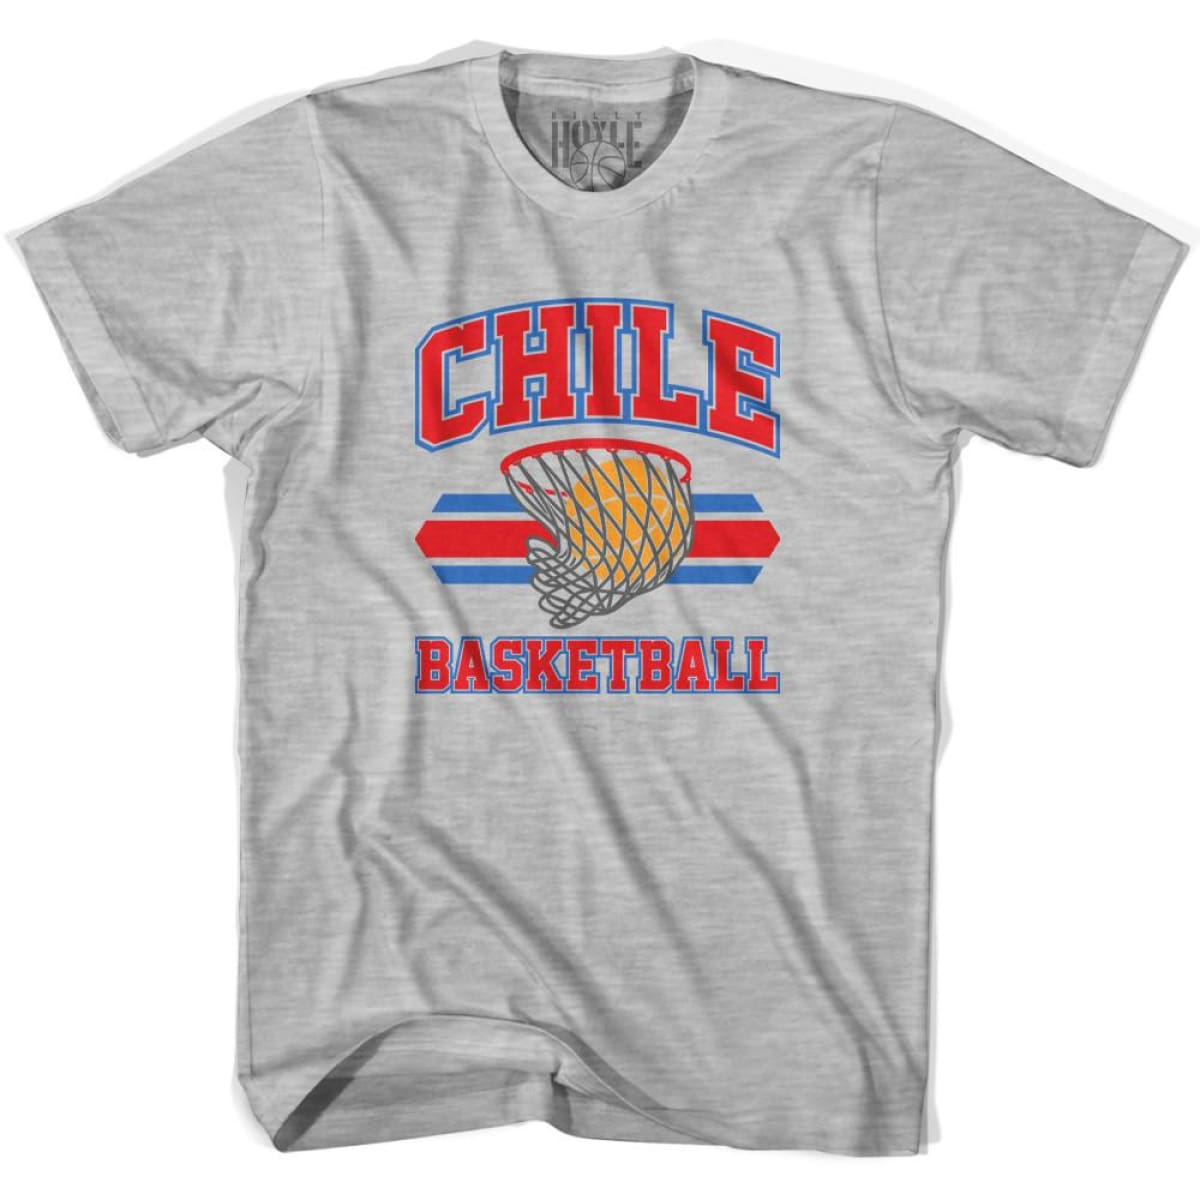 Chile 90s Basketball T-shirts - Grey Heather / Youth X-Small - Basketball T-shirt